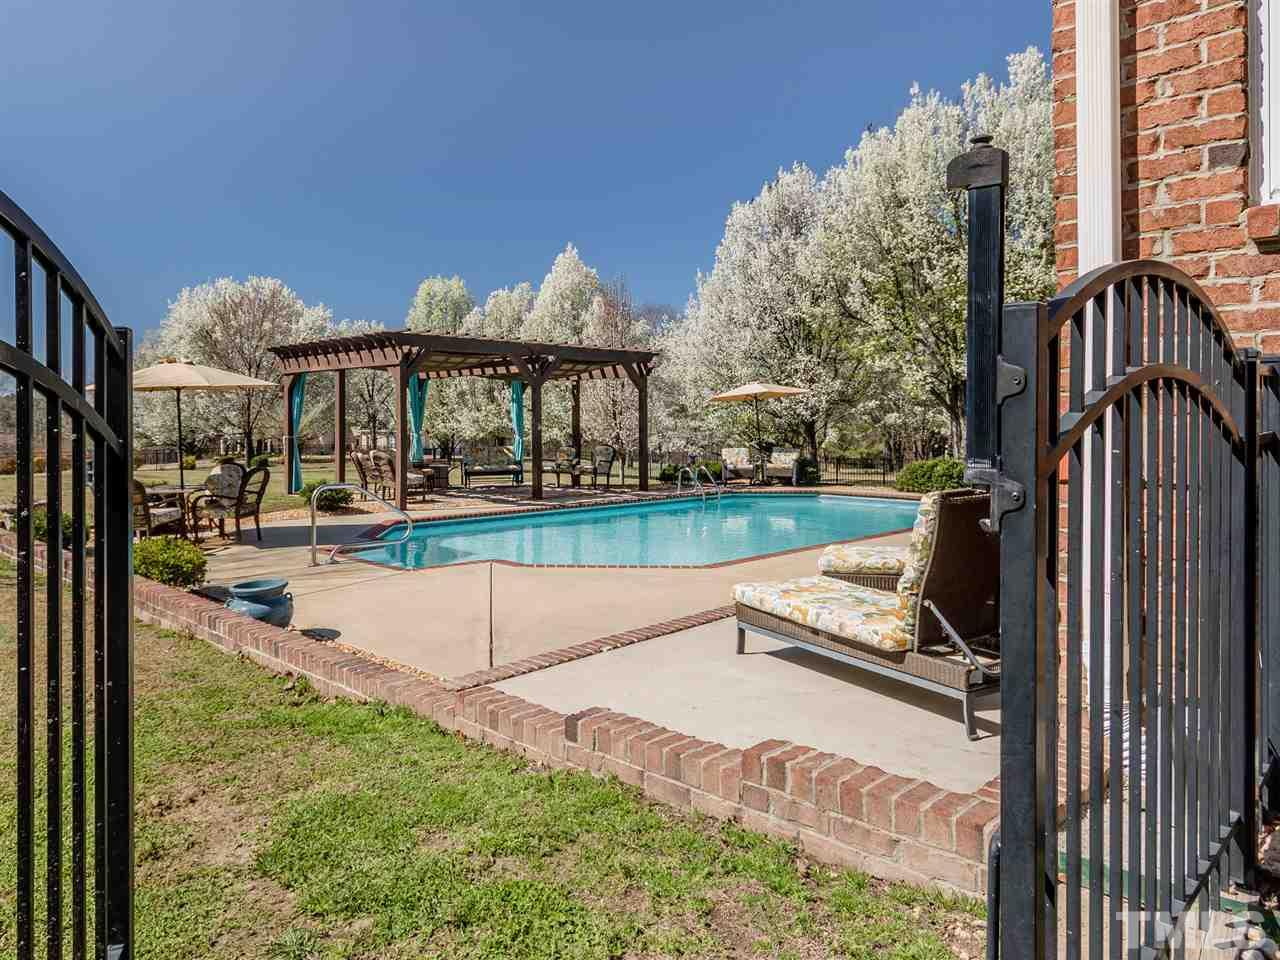 Vacation all summer long in your own saltwater pool, sun bathe on the patio or relax under the shaded pergola.